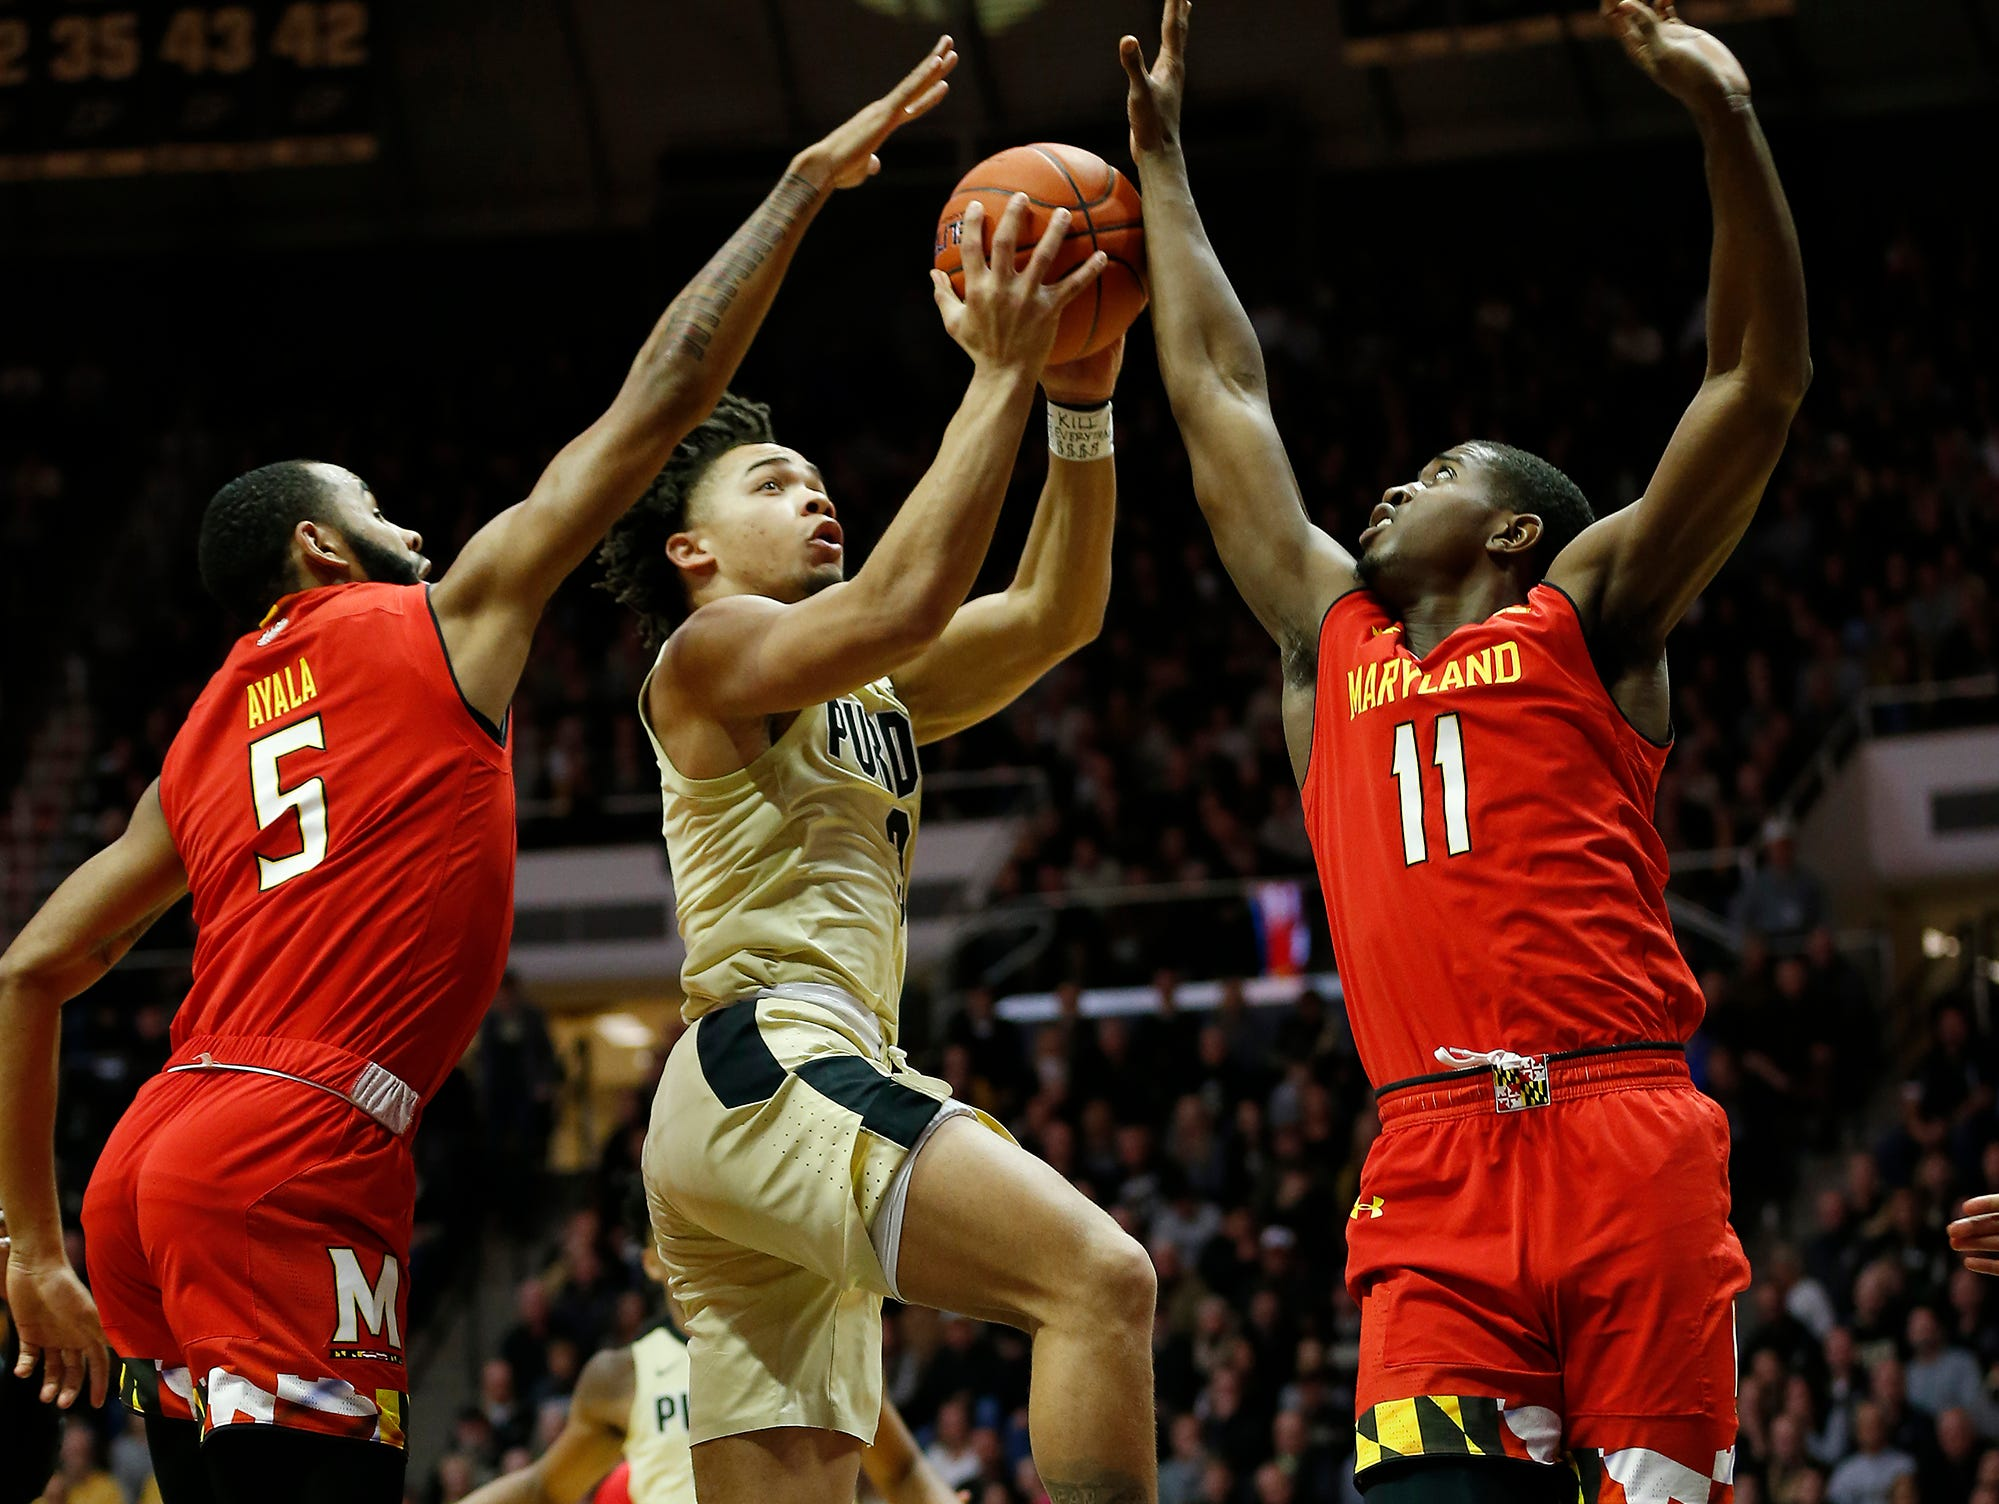 Carsen Edwards of Purdue drives between Eric Ayala and Darryl Morsell of Maryland for a shot Thursday, December 6, 2018, at Mackey Arena.